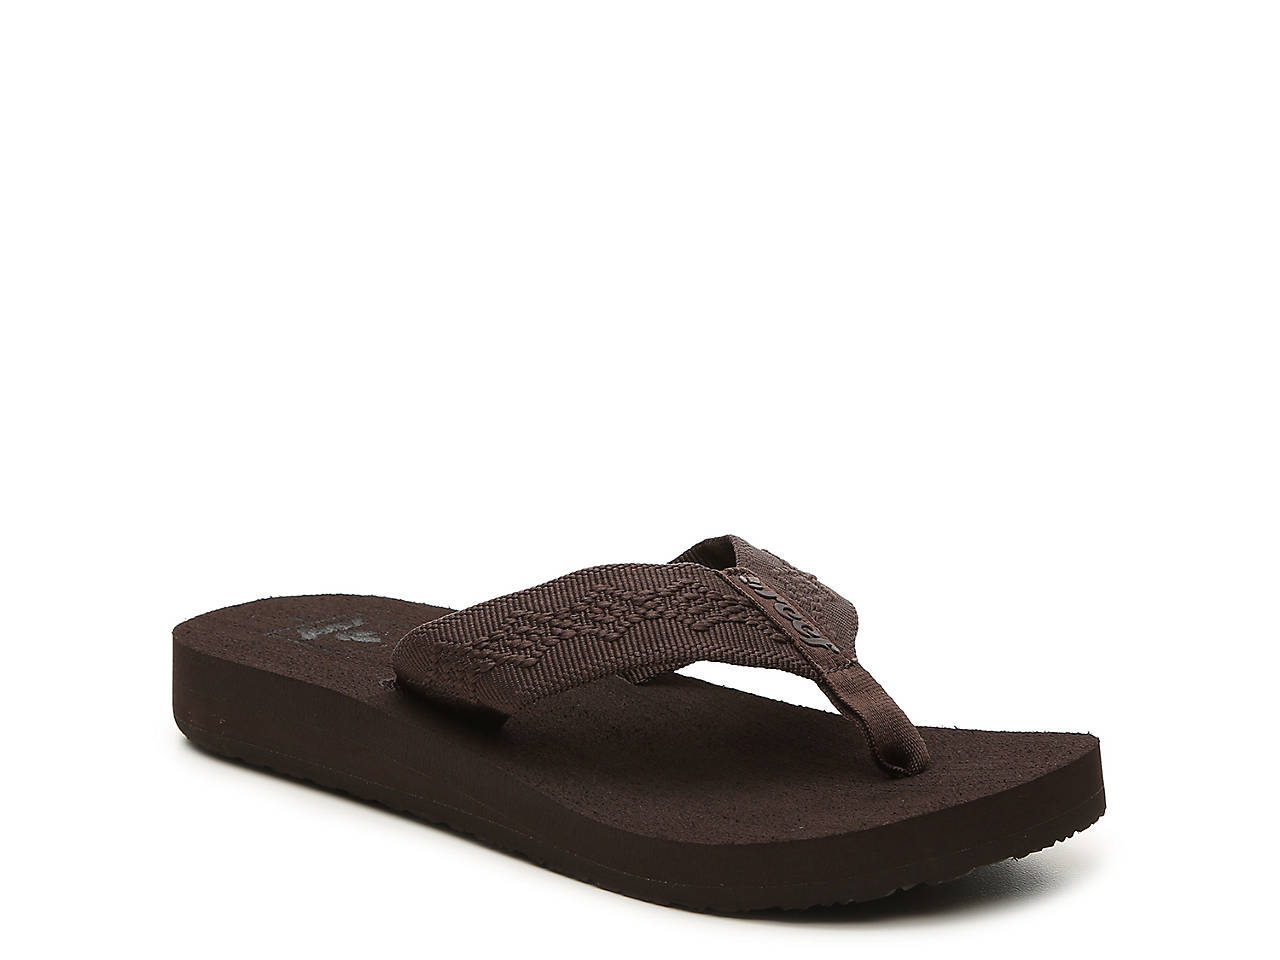 7fc7a8261 Reef Sandy Flip Flop Women s Shoes